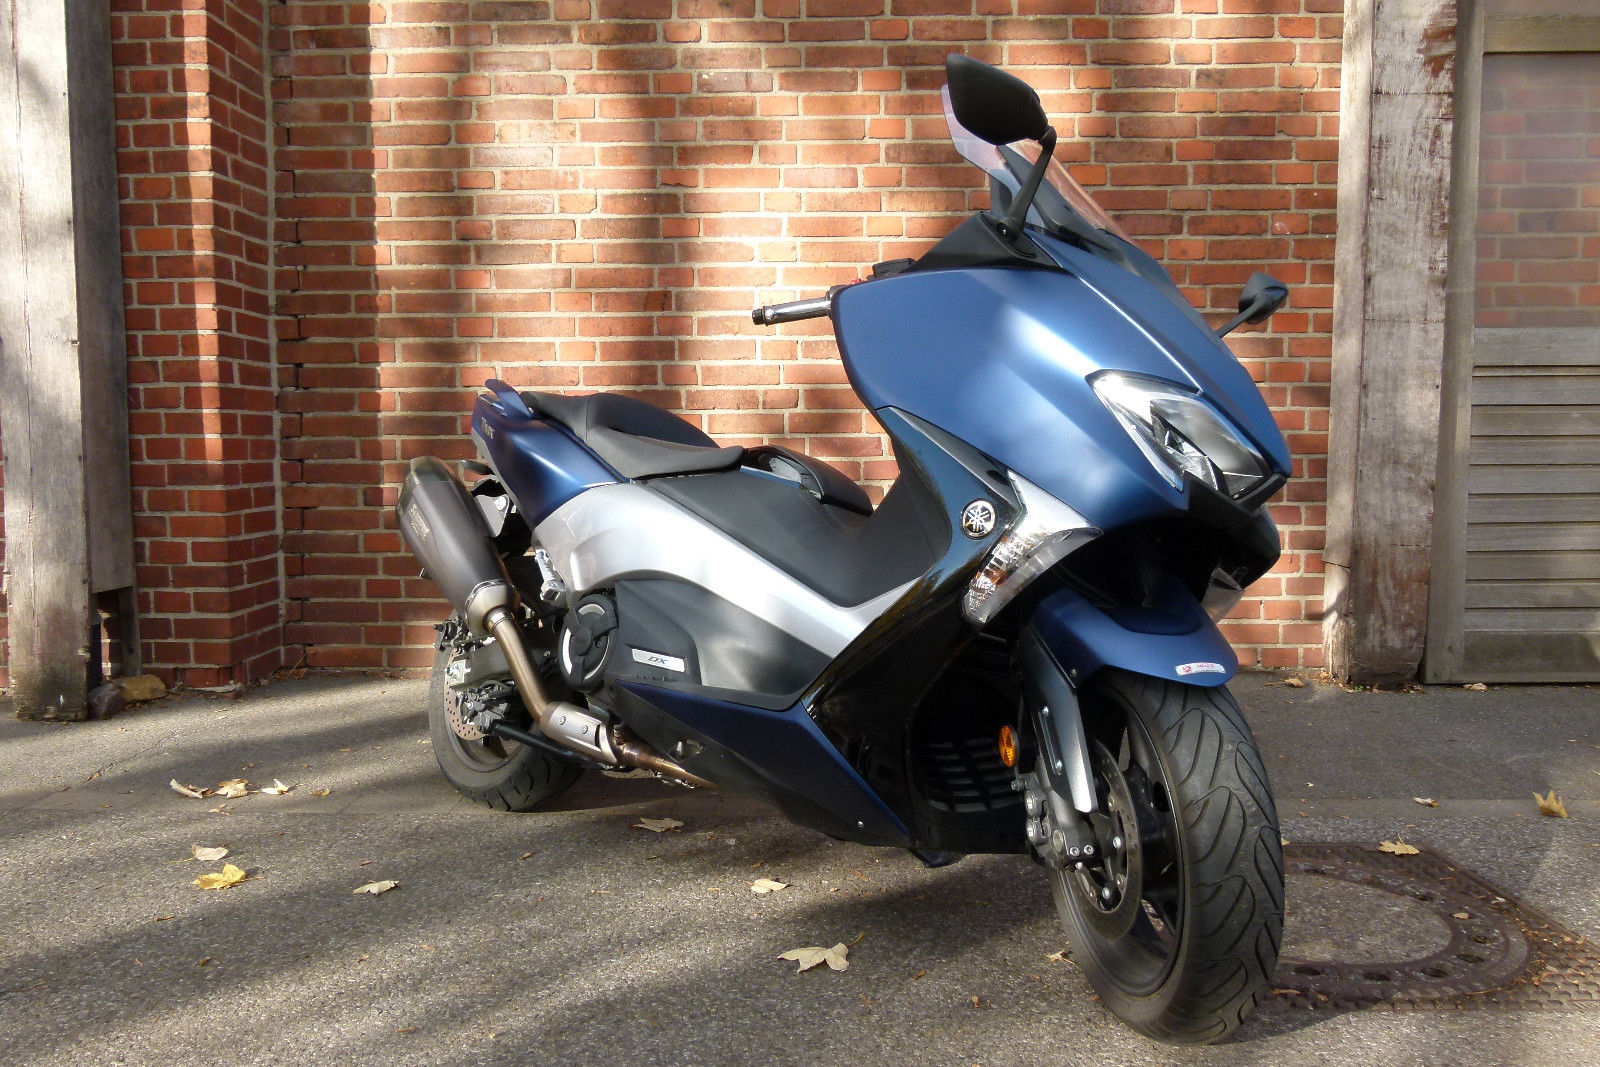 TRACER900 ABS Modell 2018 incl. 1000,- ZUBEHÖR!